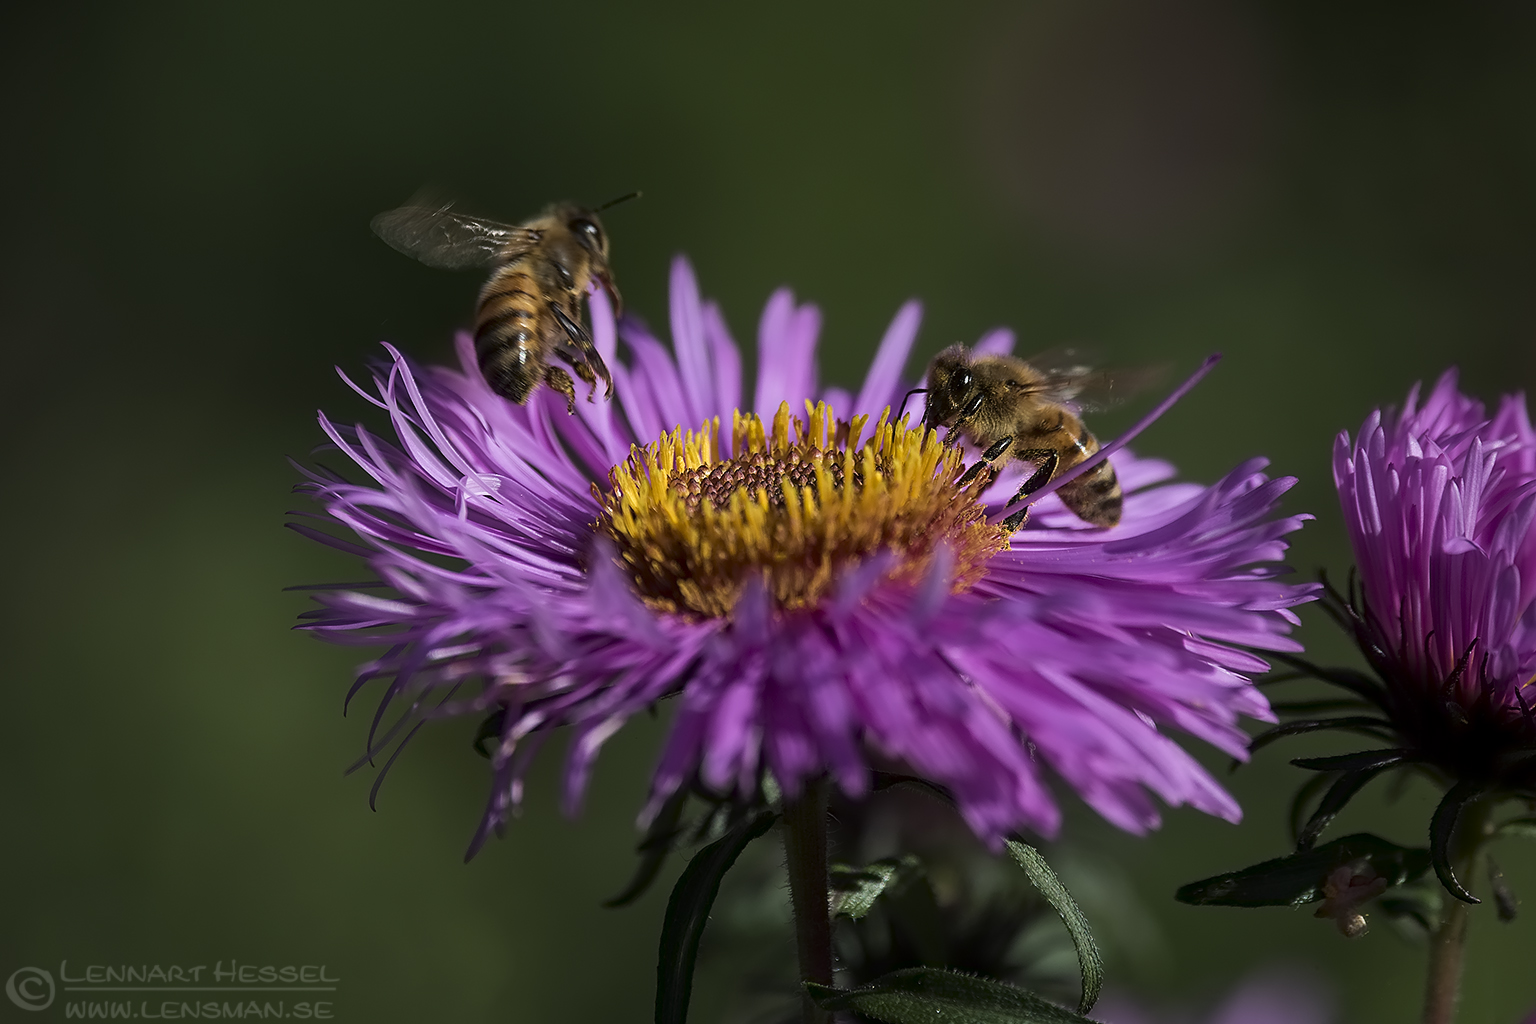 Western Honey Bees Red Deer